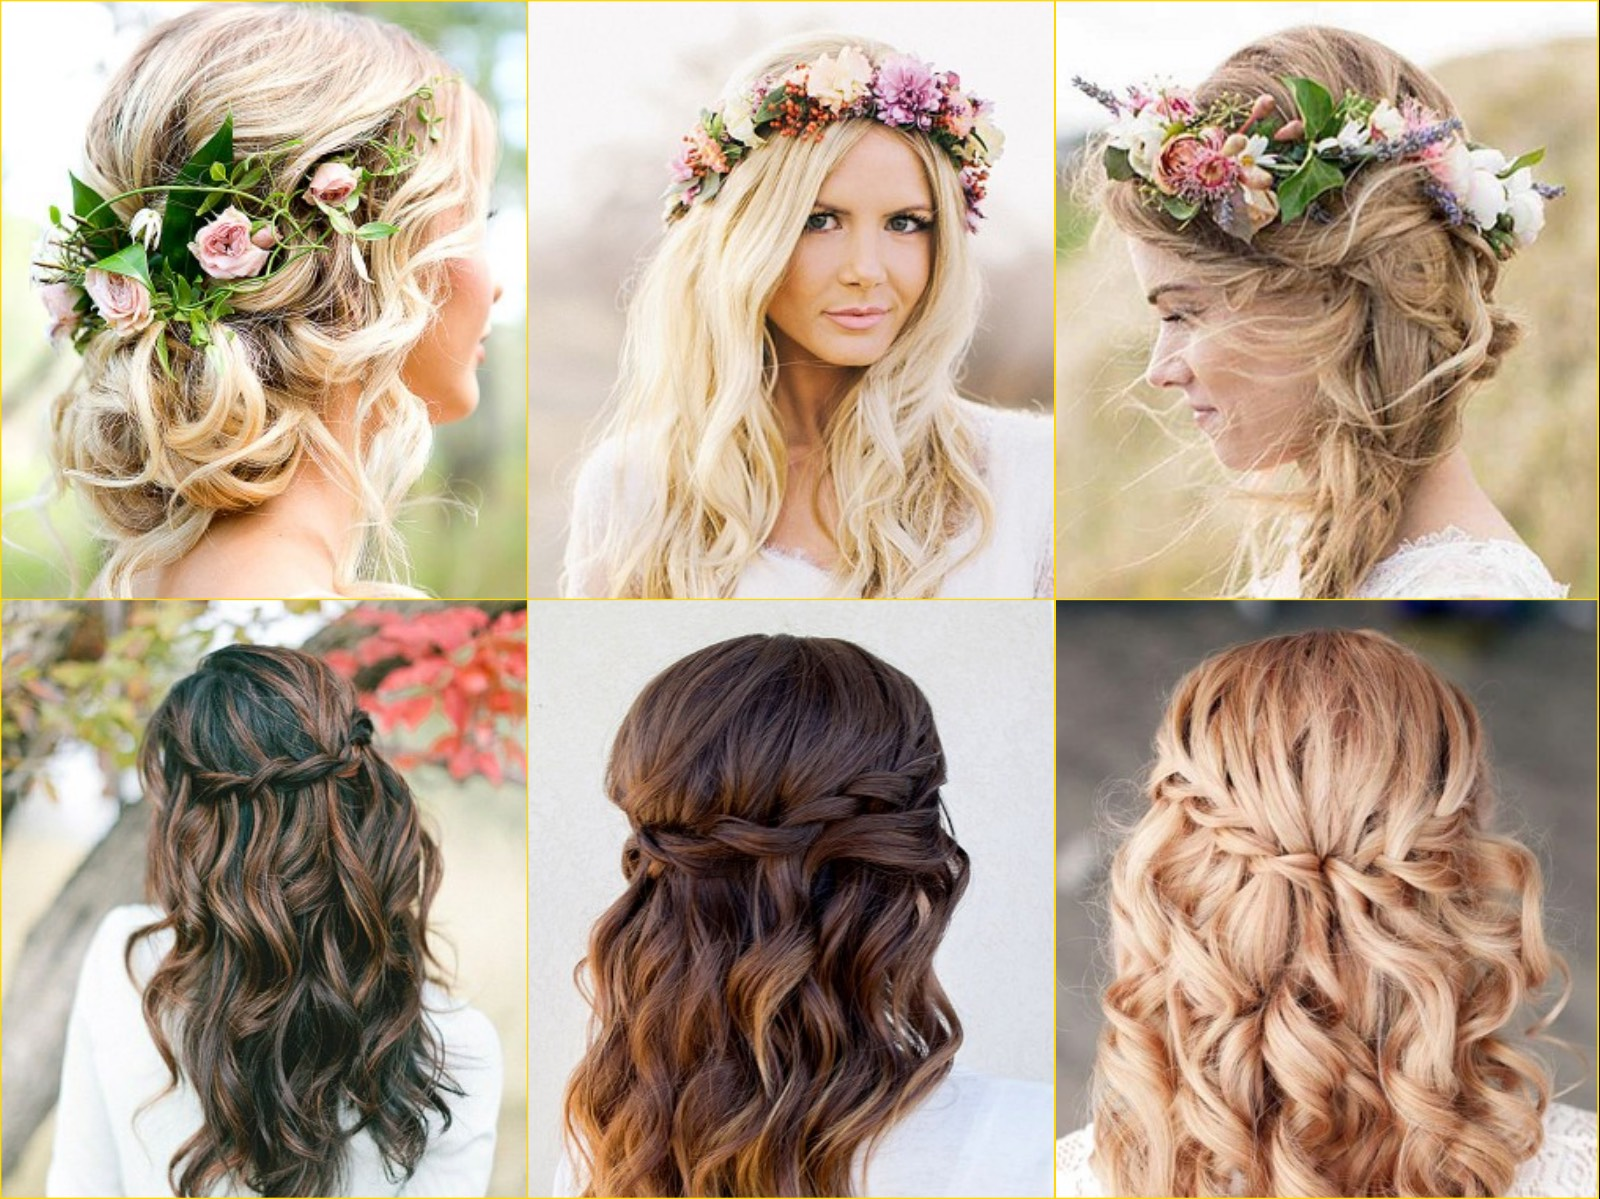 Hairstyles for brides images wedding dress decoration and refrence hairstyles for brides image collections wedding dress decoration hairstyles for brides image collections wedding dress decoration junglespirit Image collections